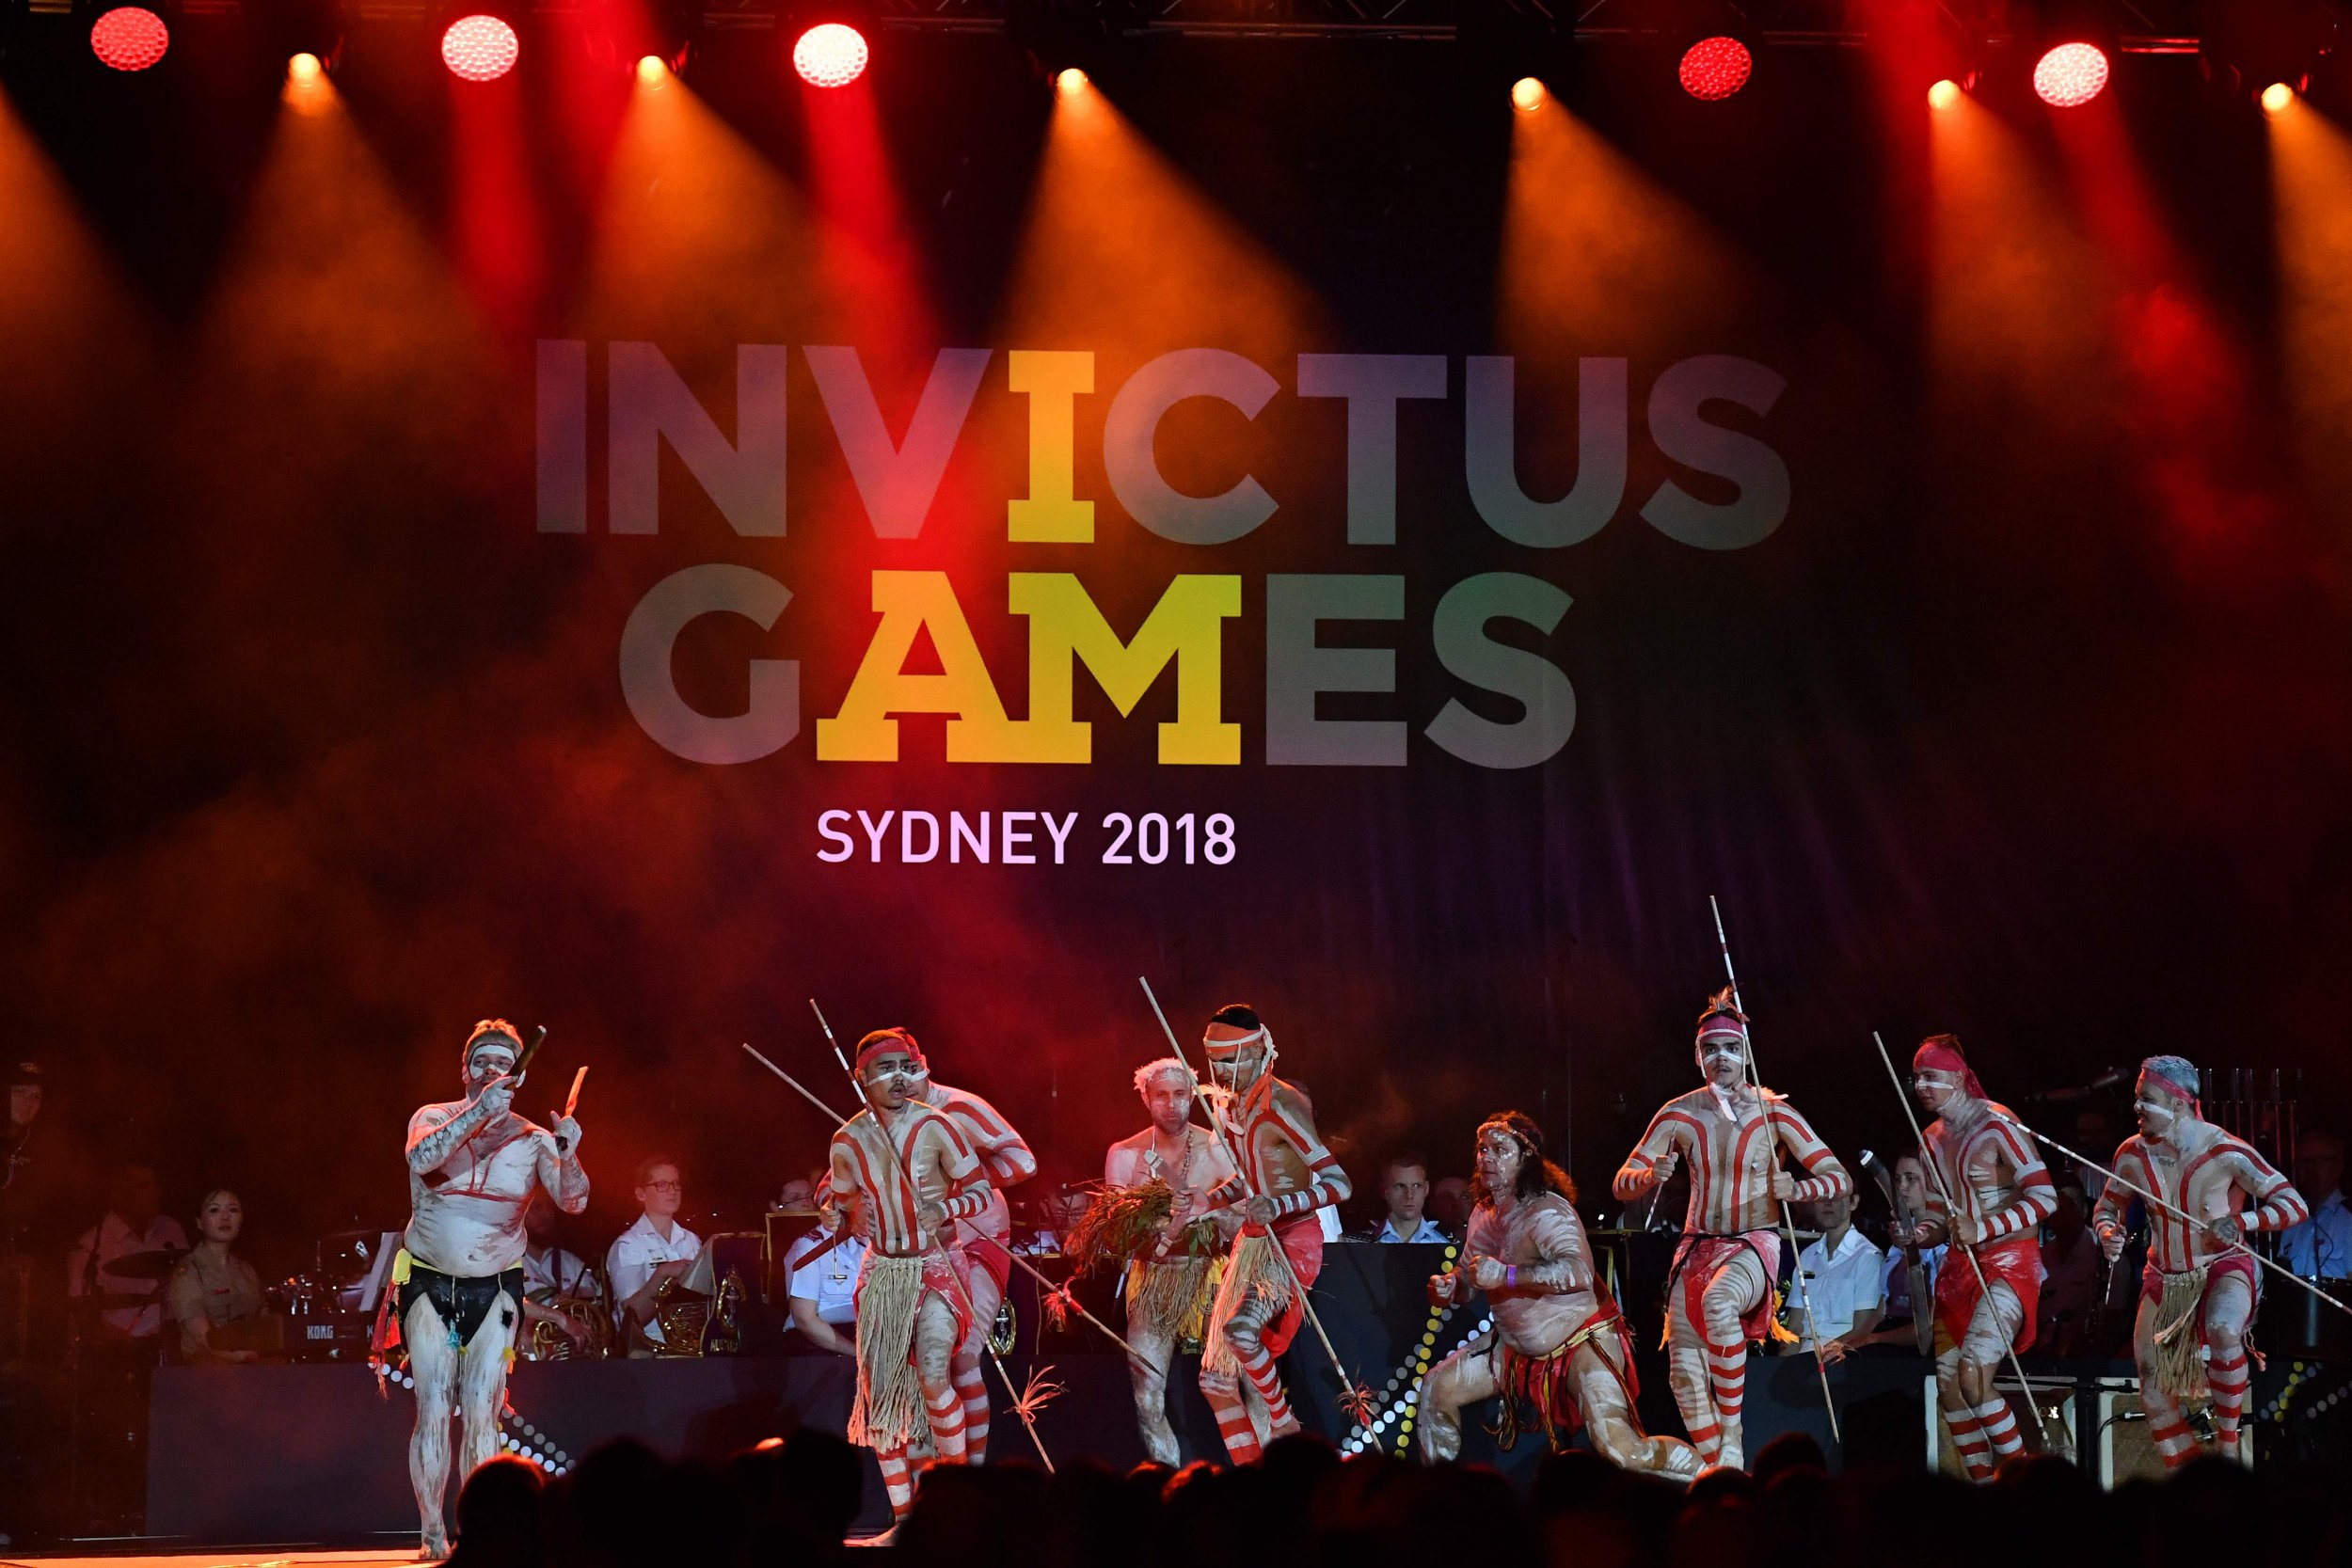 Artists perform during the opening ceremony of the Invictus Games in Sydney on October 20, 2018. - Britain's Prince Harry opened the Olympic-style Invictus Games for disabled and wounded soldiers at a glittering ceremony on the forecourt of Sydney's Opera House. (Photo by SAEED KHAN / AFP)SAEED KHAN/AFP/Getty Images